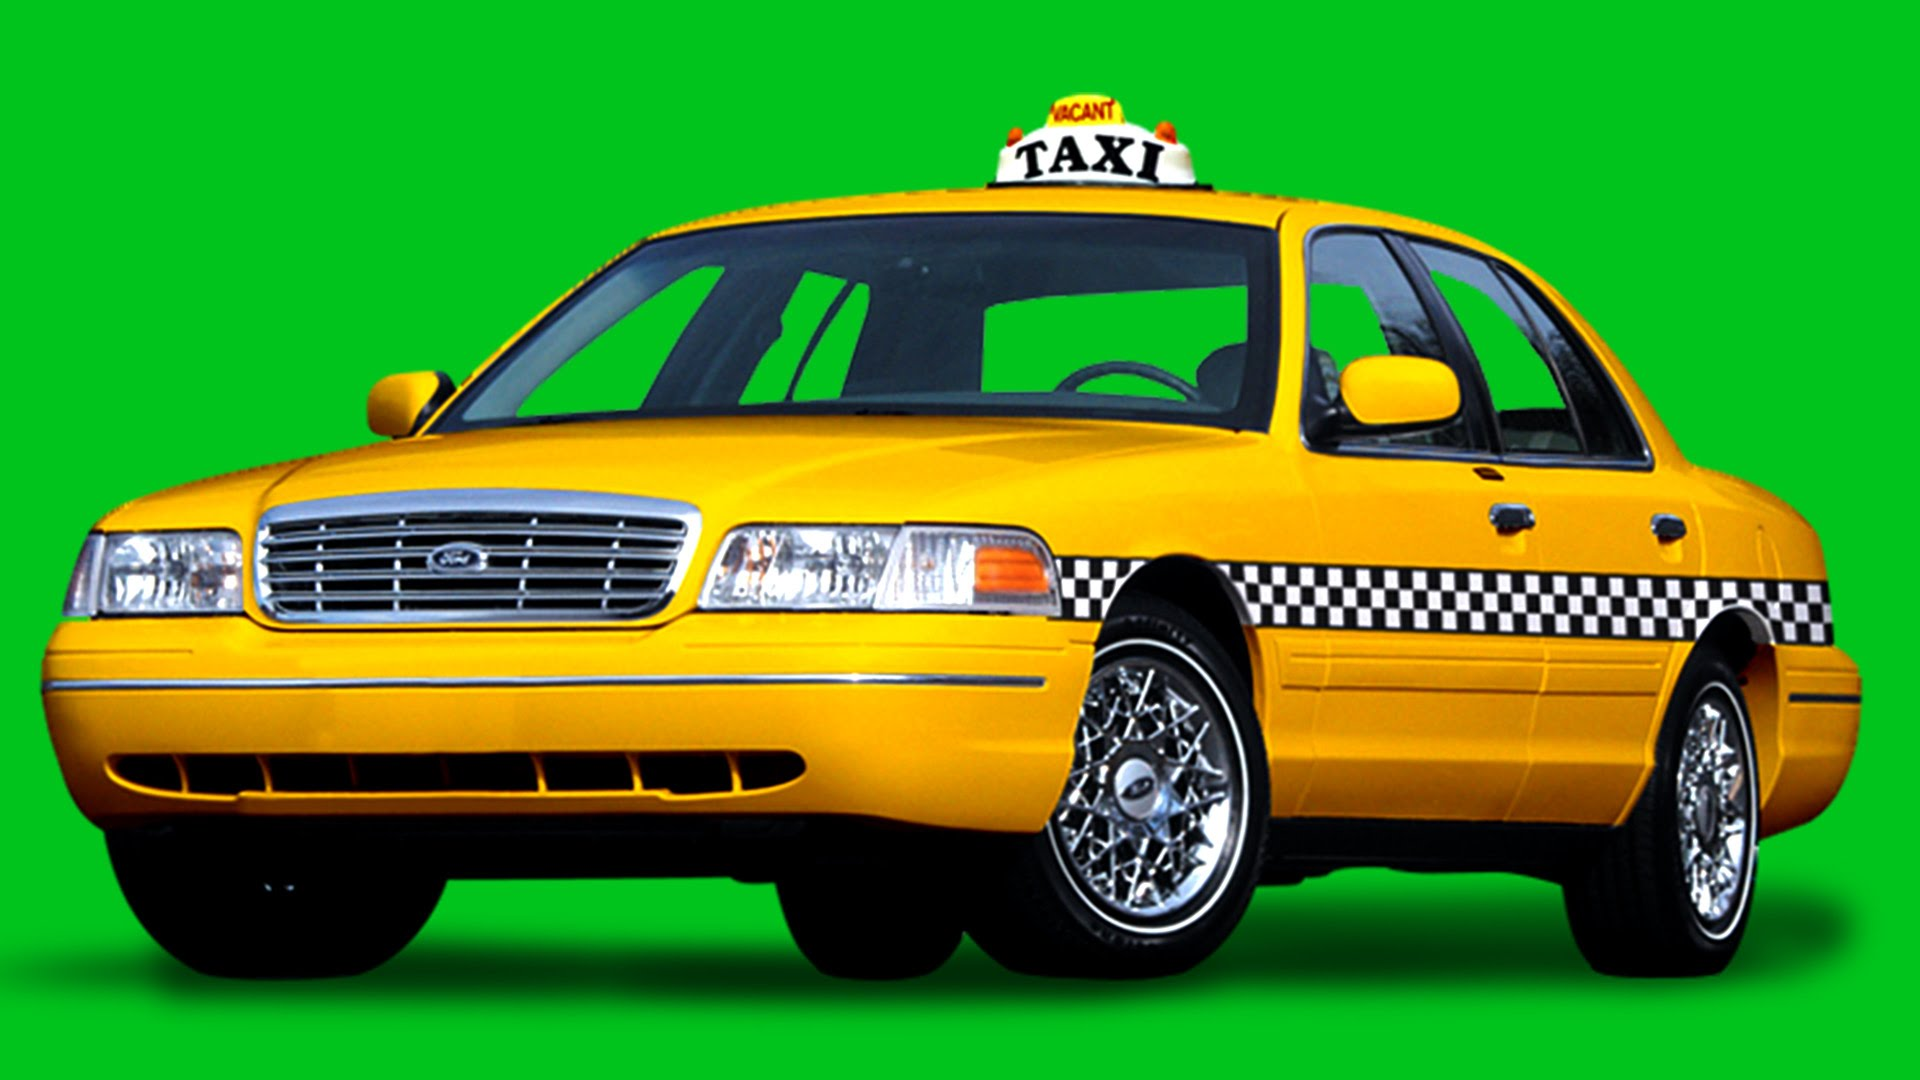 Kids Taxi Car wash Compilation | Taxi Wash Videos For Children - YouTube